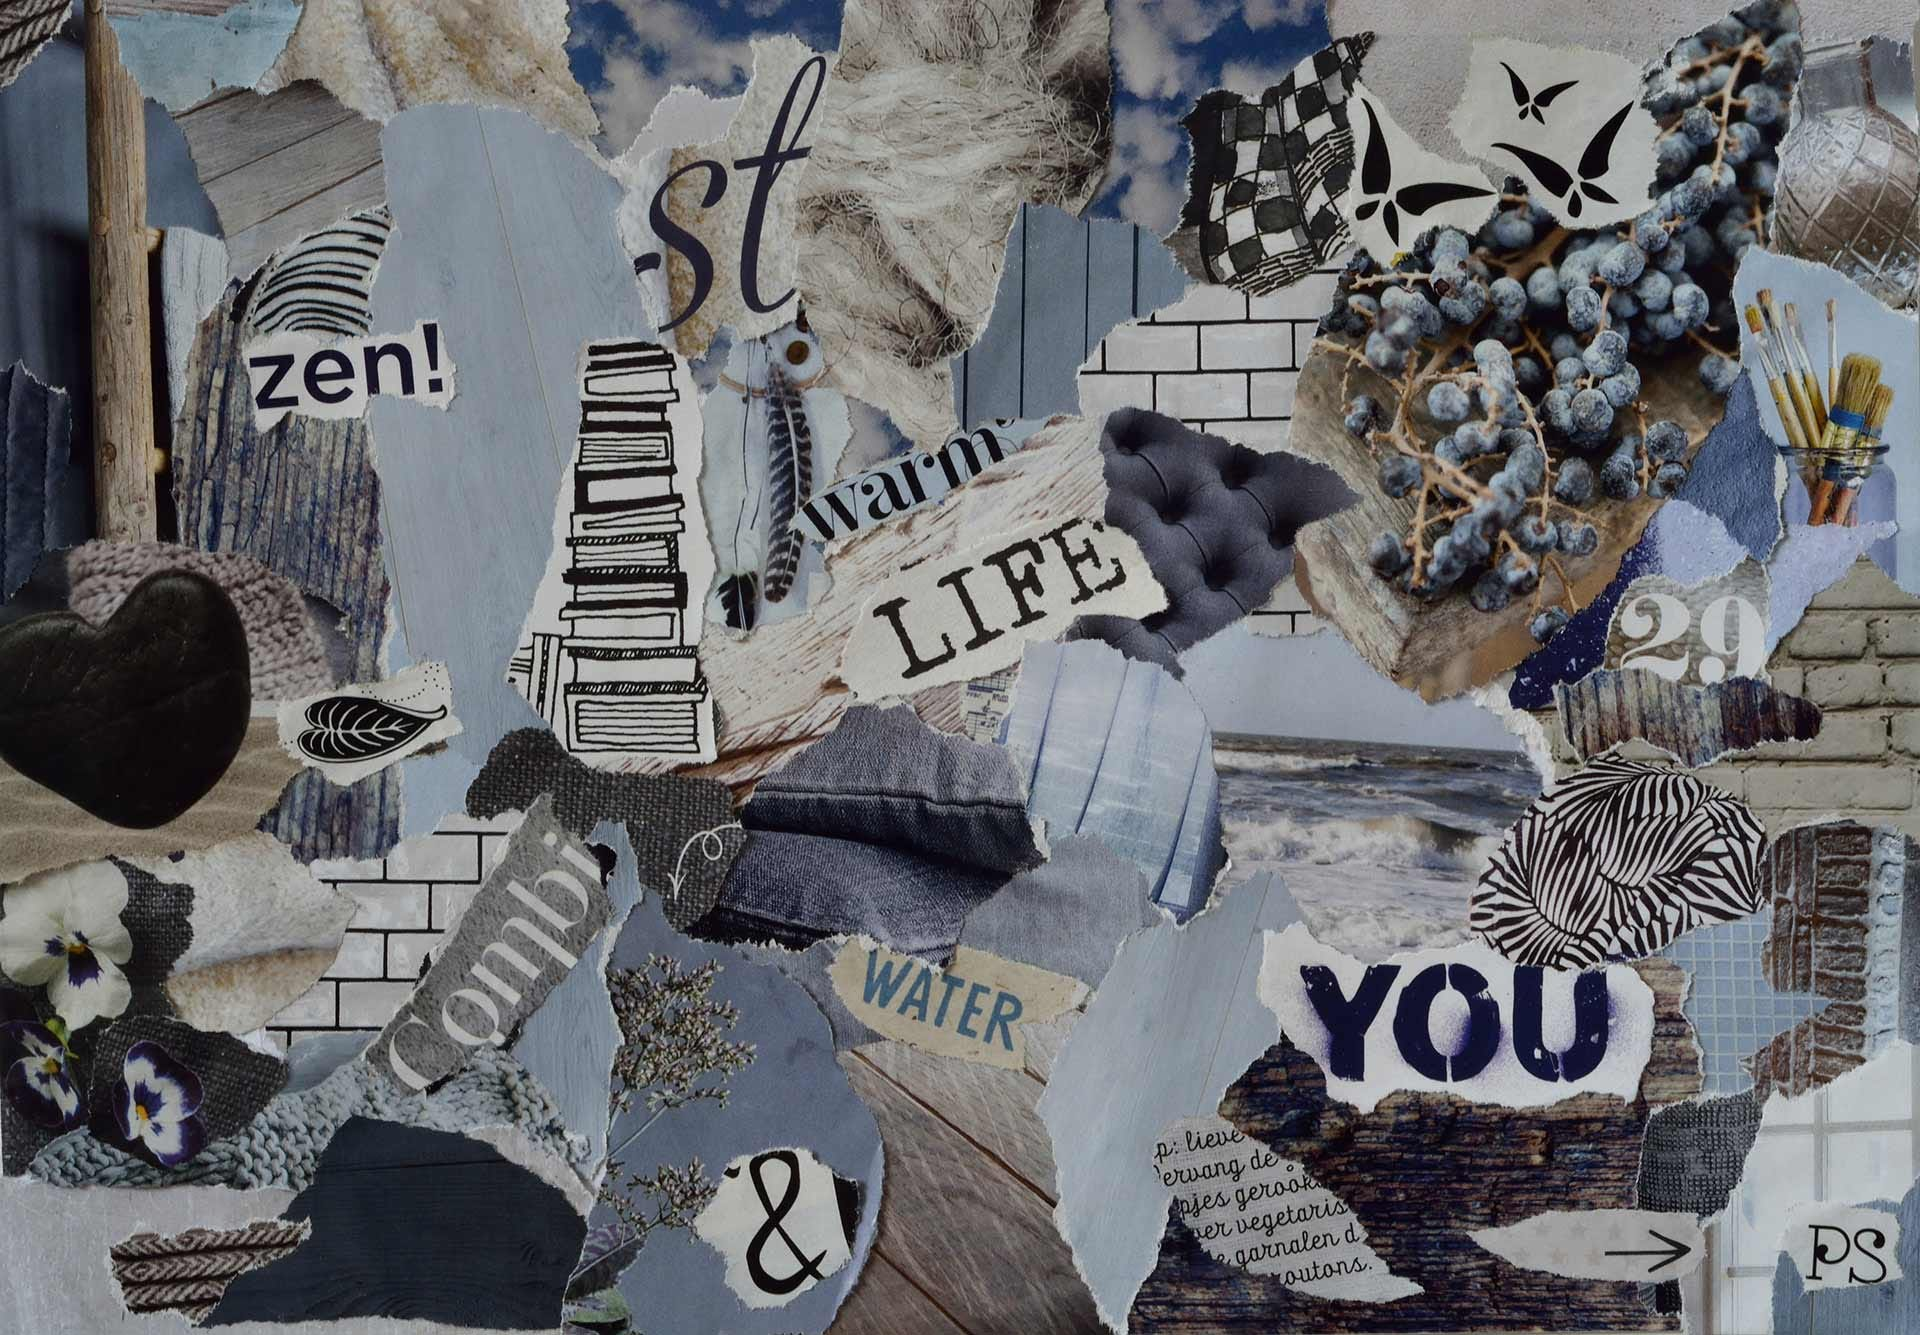 An analog collage made up of magazine clippings.